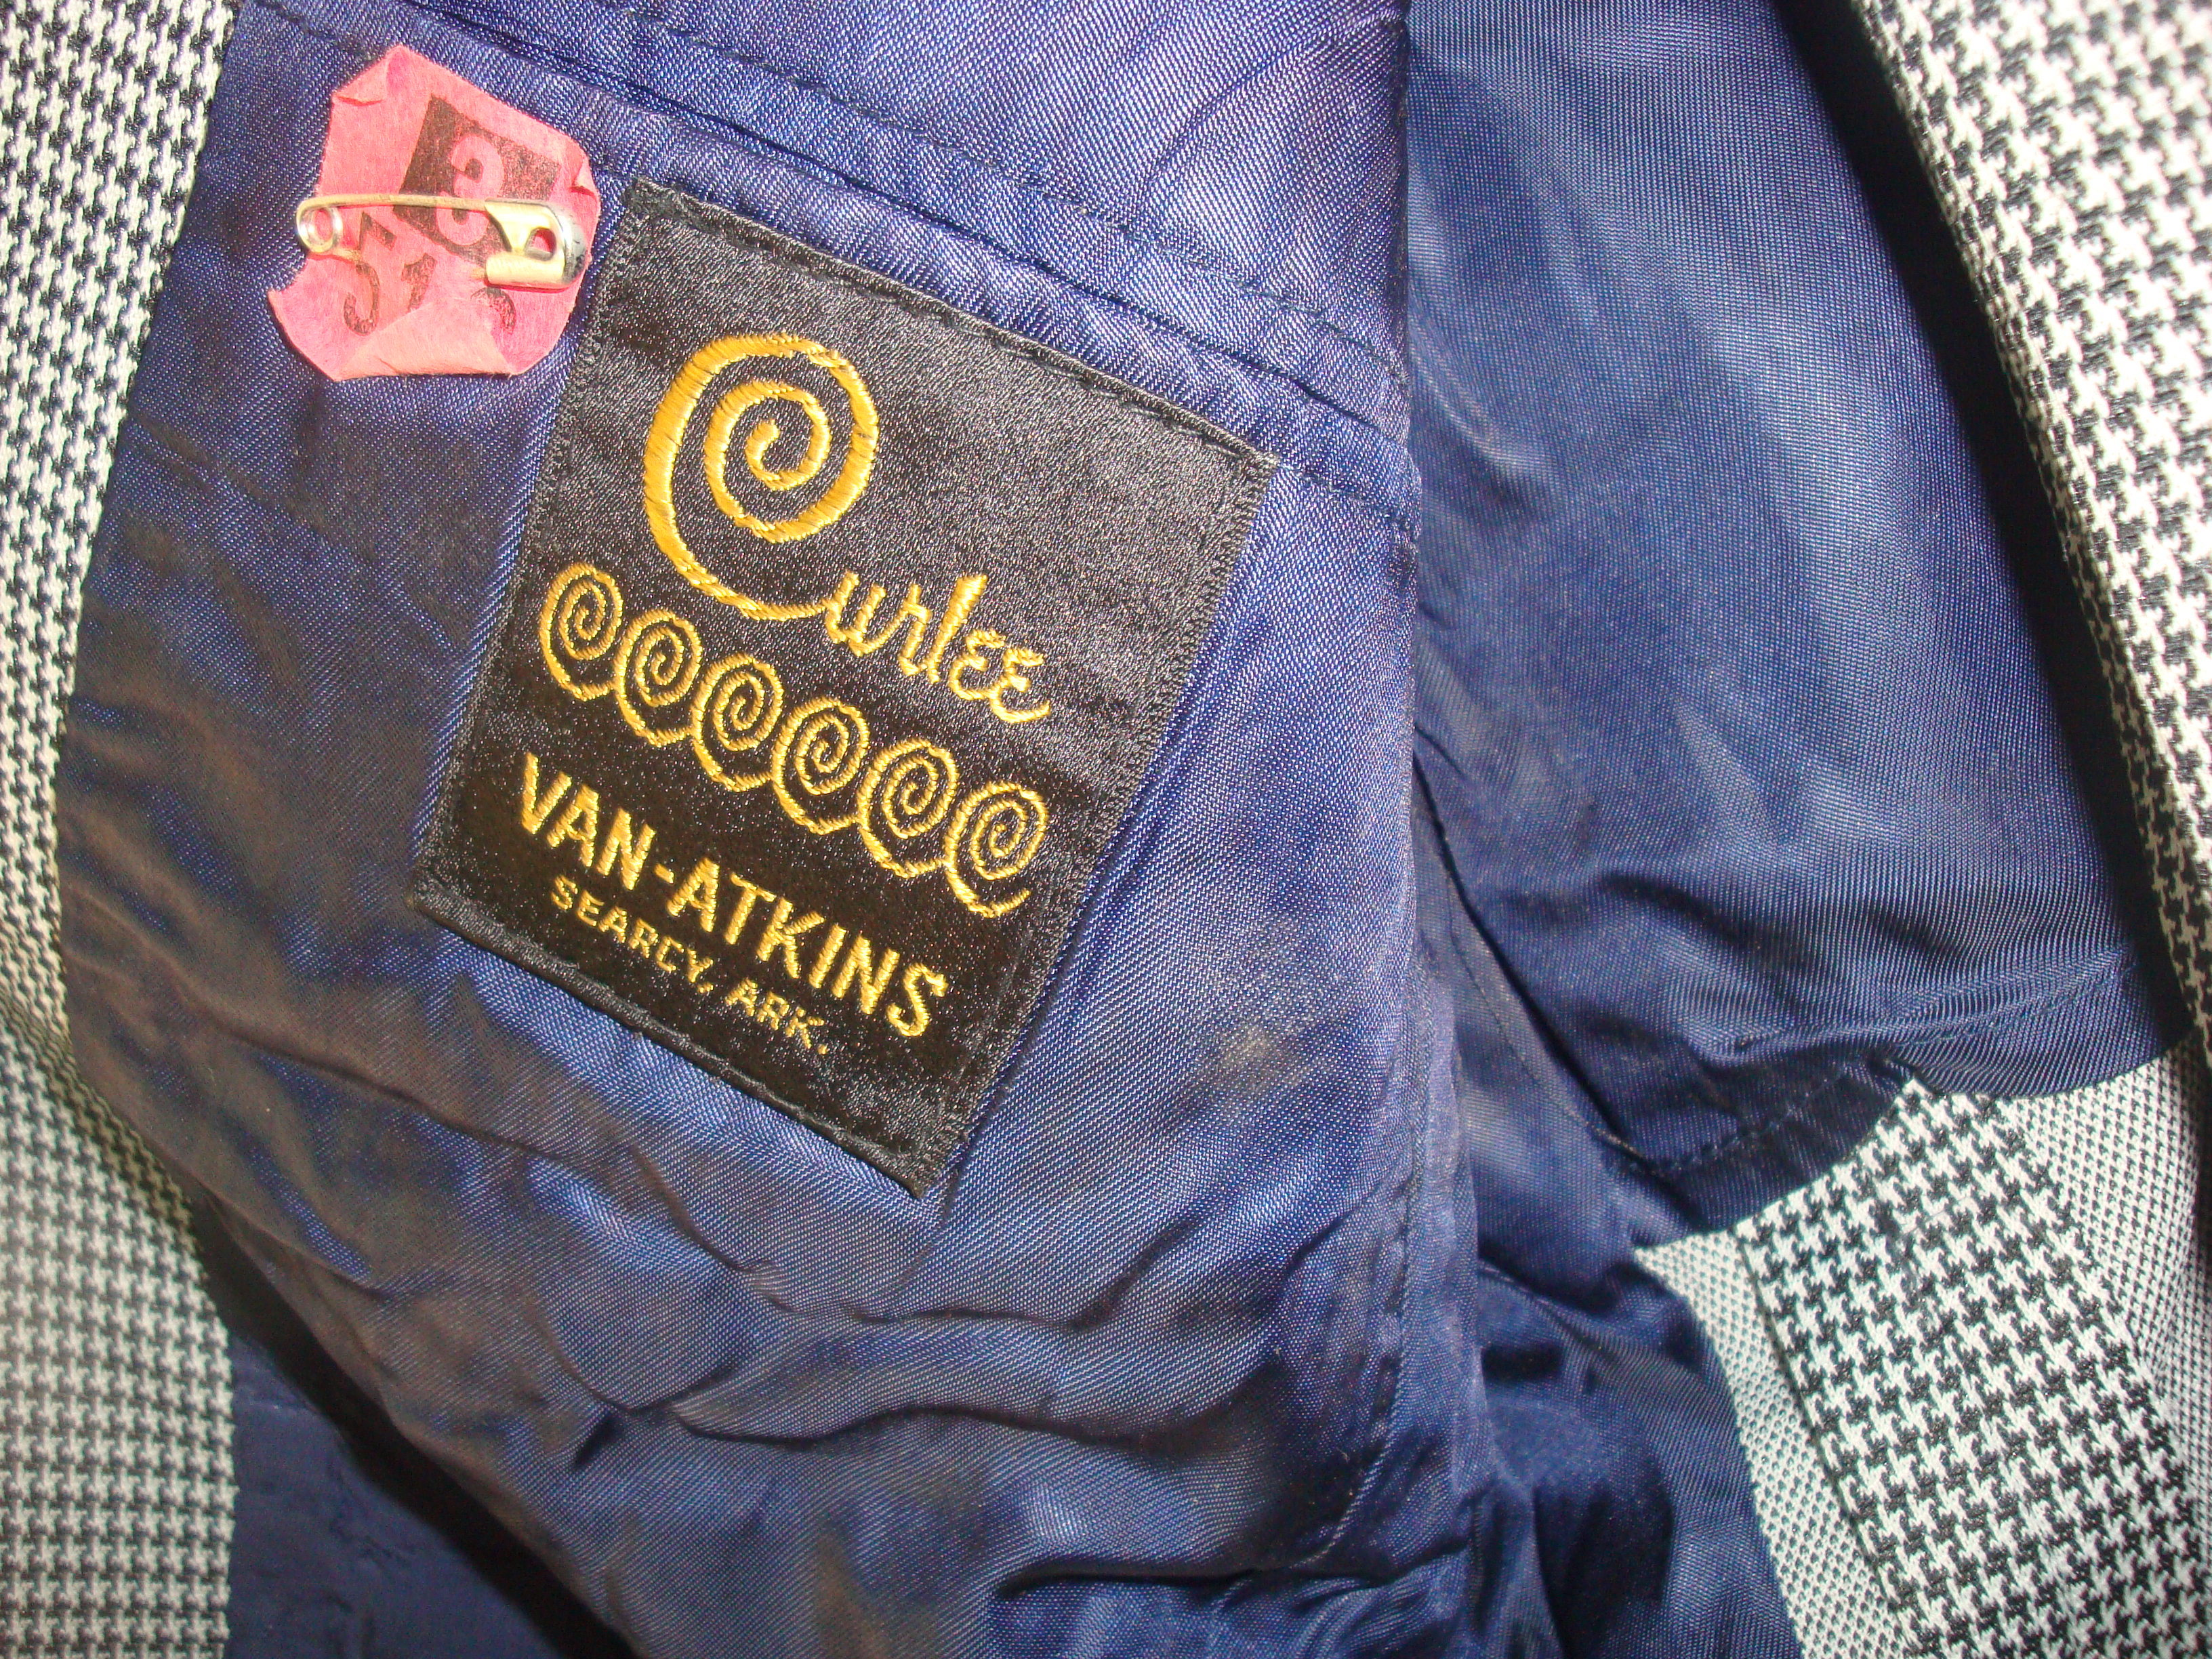 Curlee double knit suit 70's Searcy AR Van-Atkins